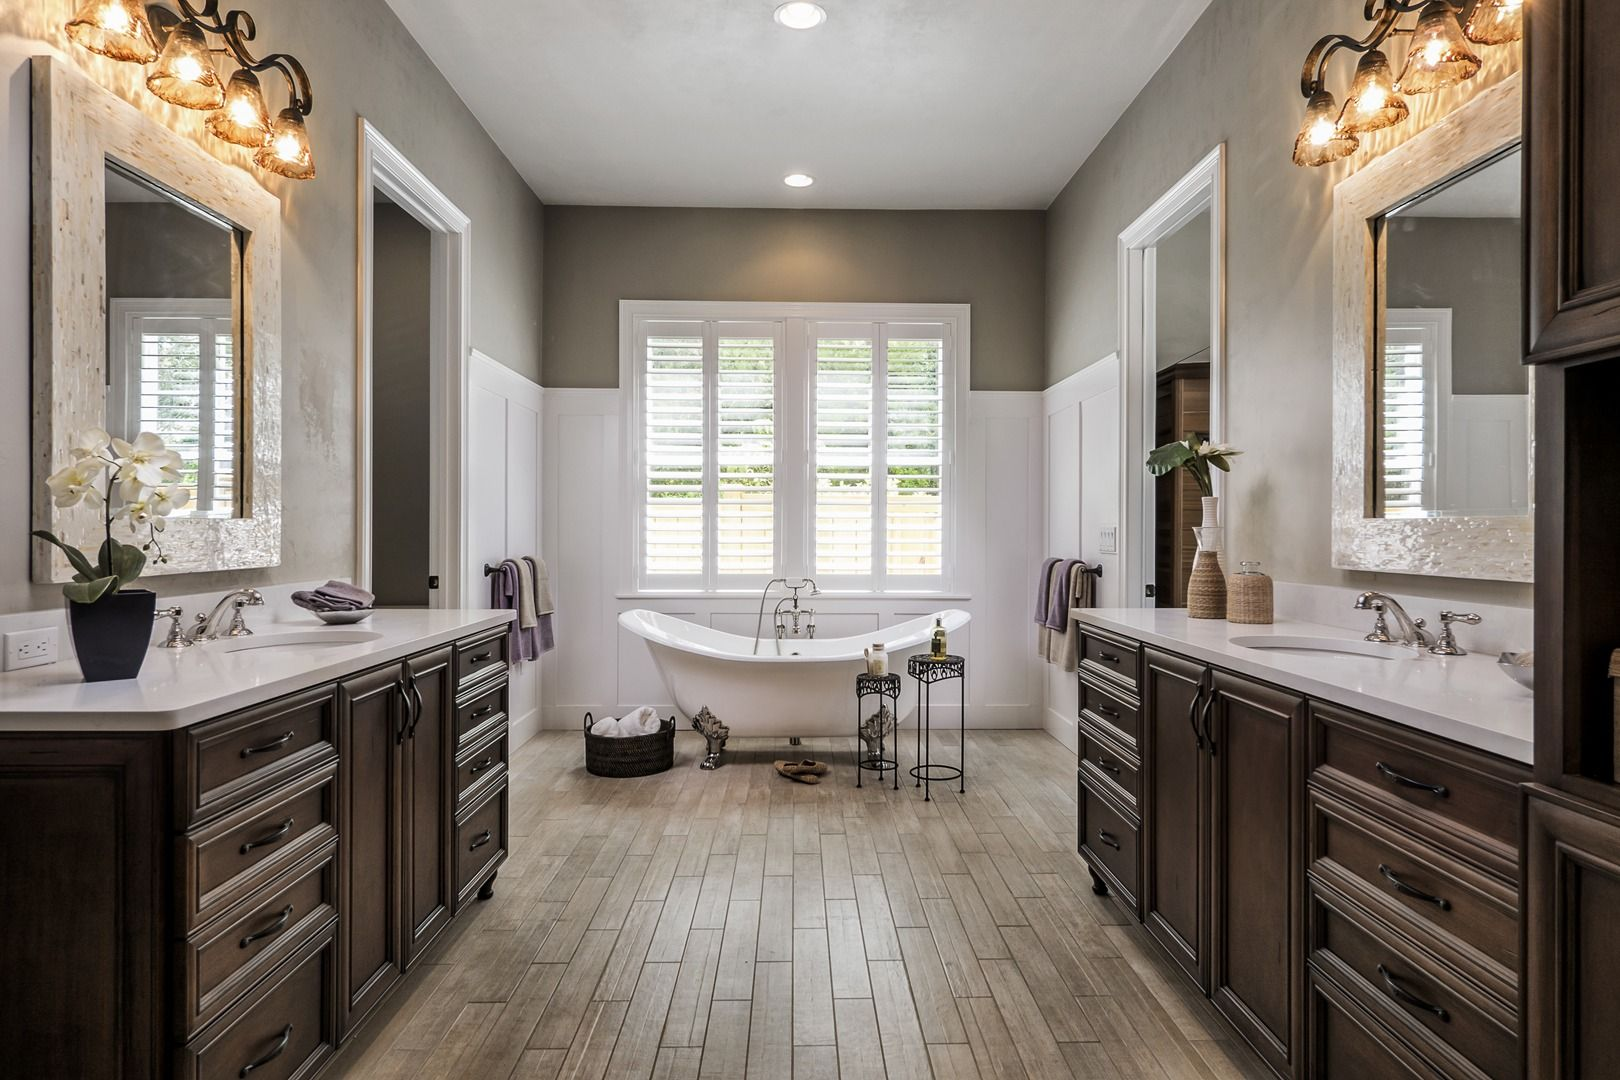 Luxury bathroom layout - Bathroom Layout